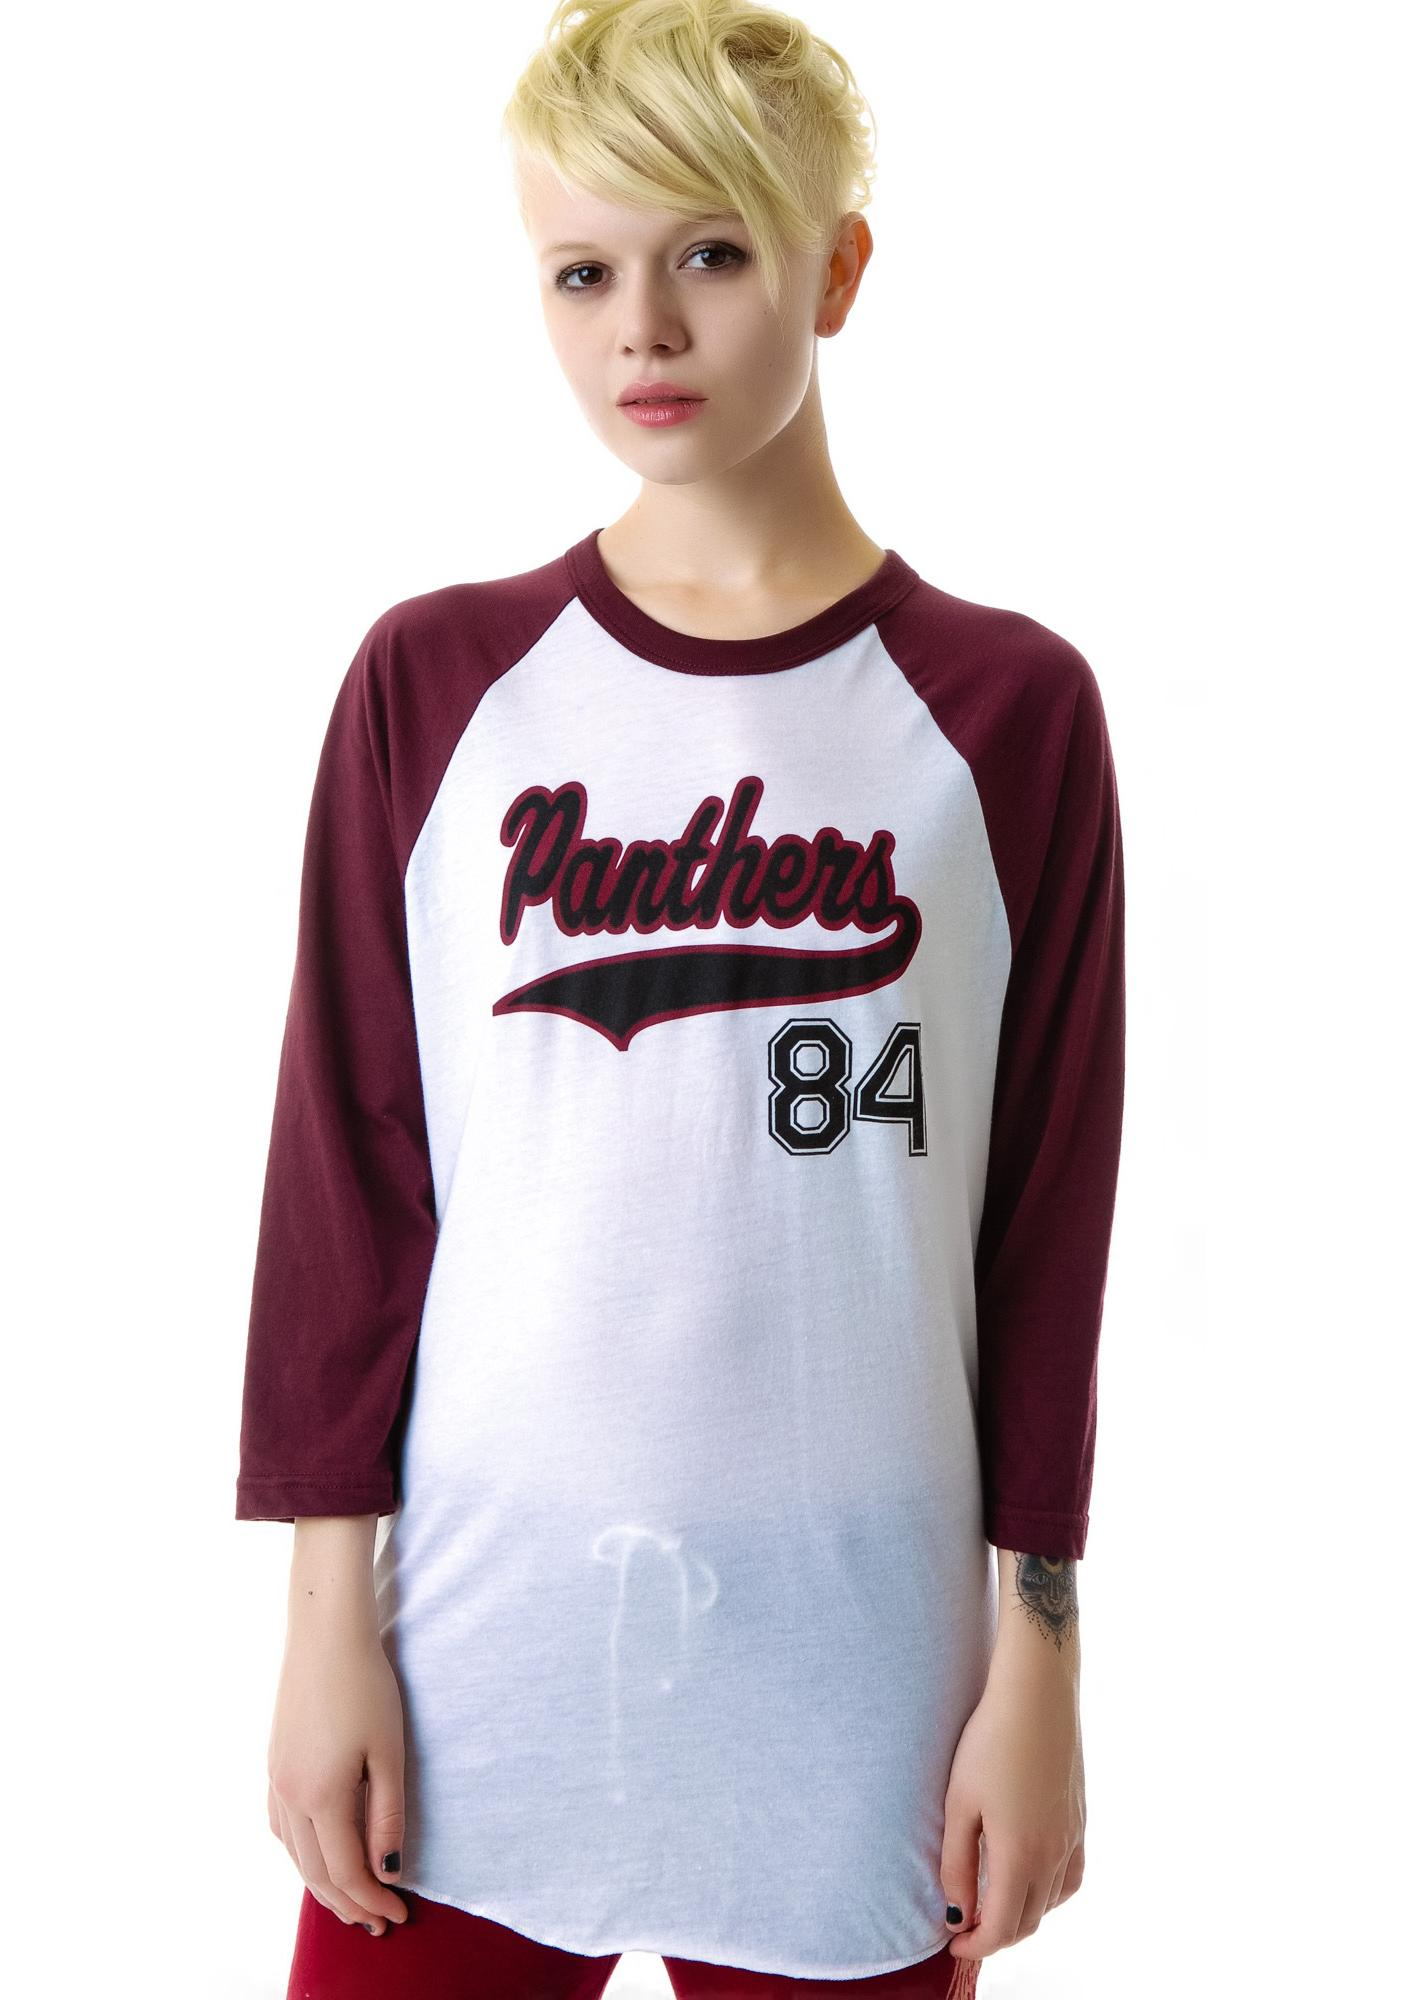 JET by John Eshaya Panthers Baseball Tee